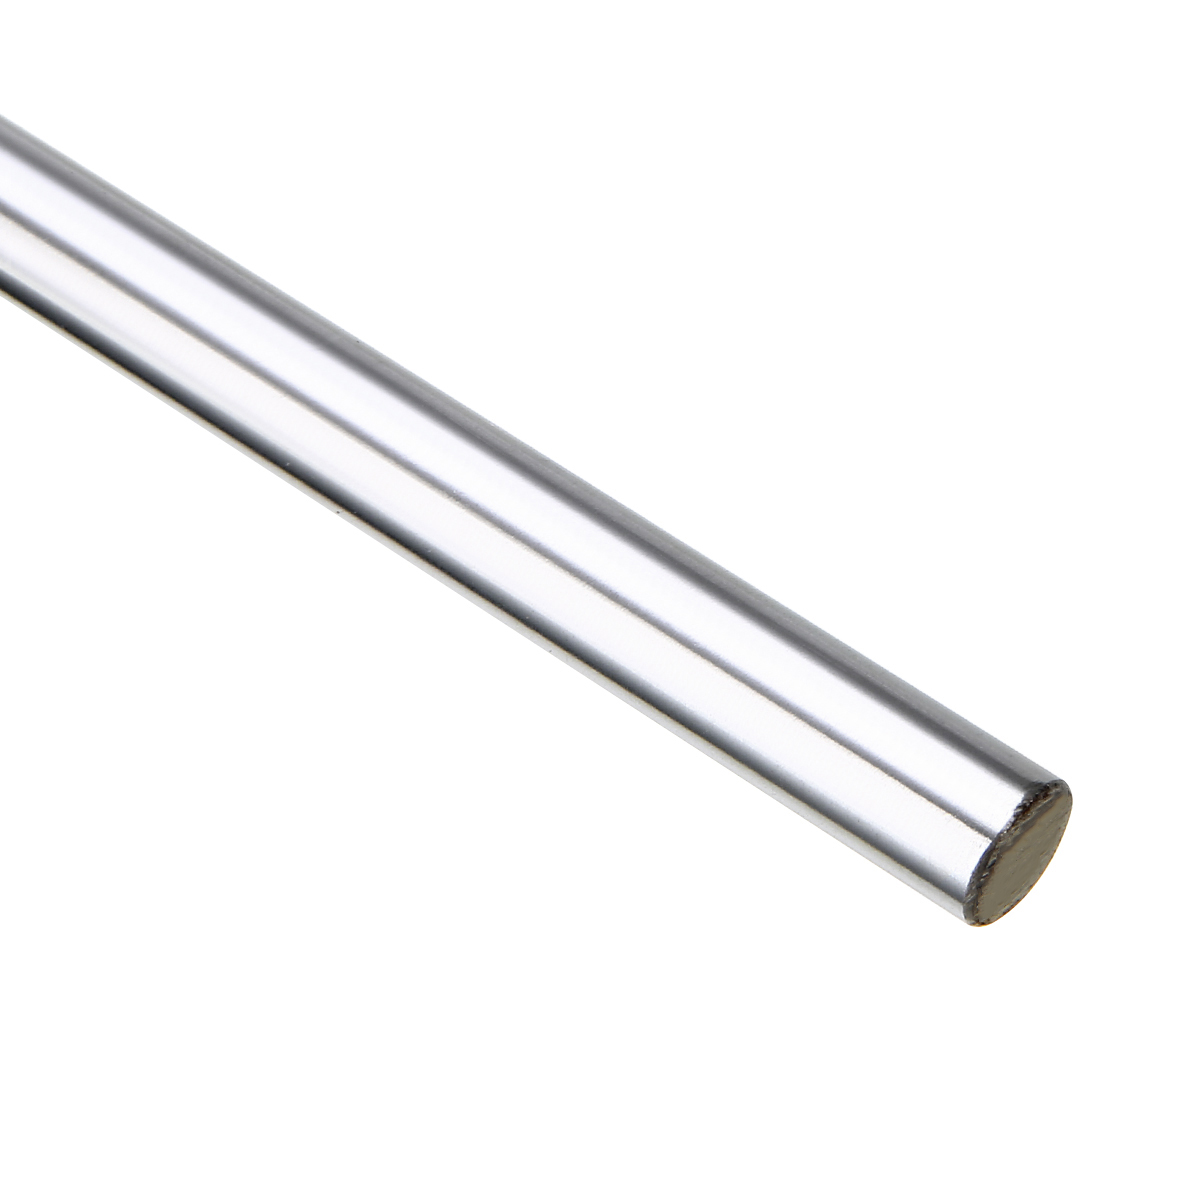 1x Linear Smooth Rod 8mm X 600mm Bearing Steel Rod Bar Cylinder Linear Rail Linear Shaft Optical Axis For 3D Printer Parts шезлонг basic plus kettler